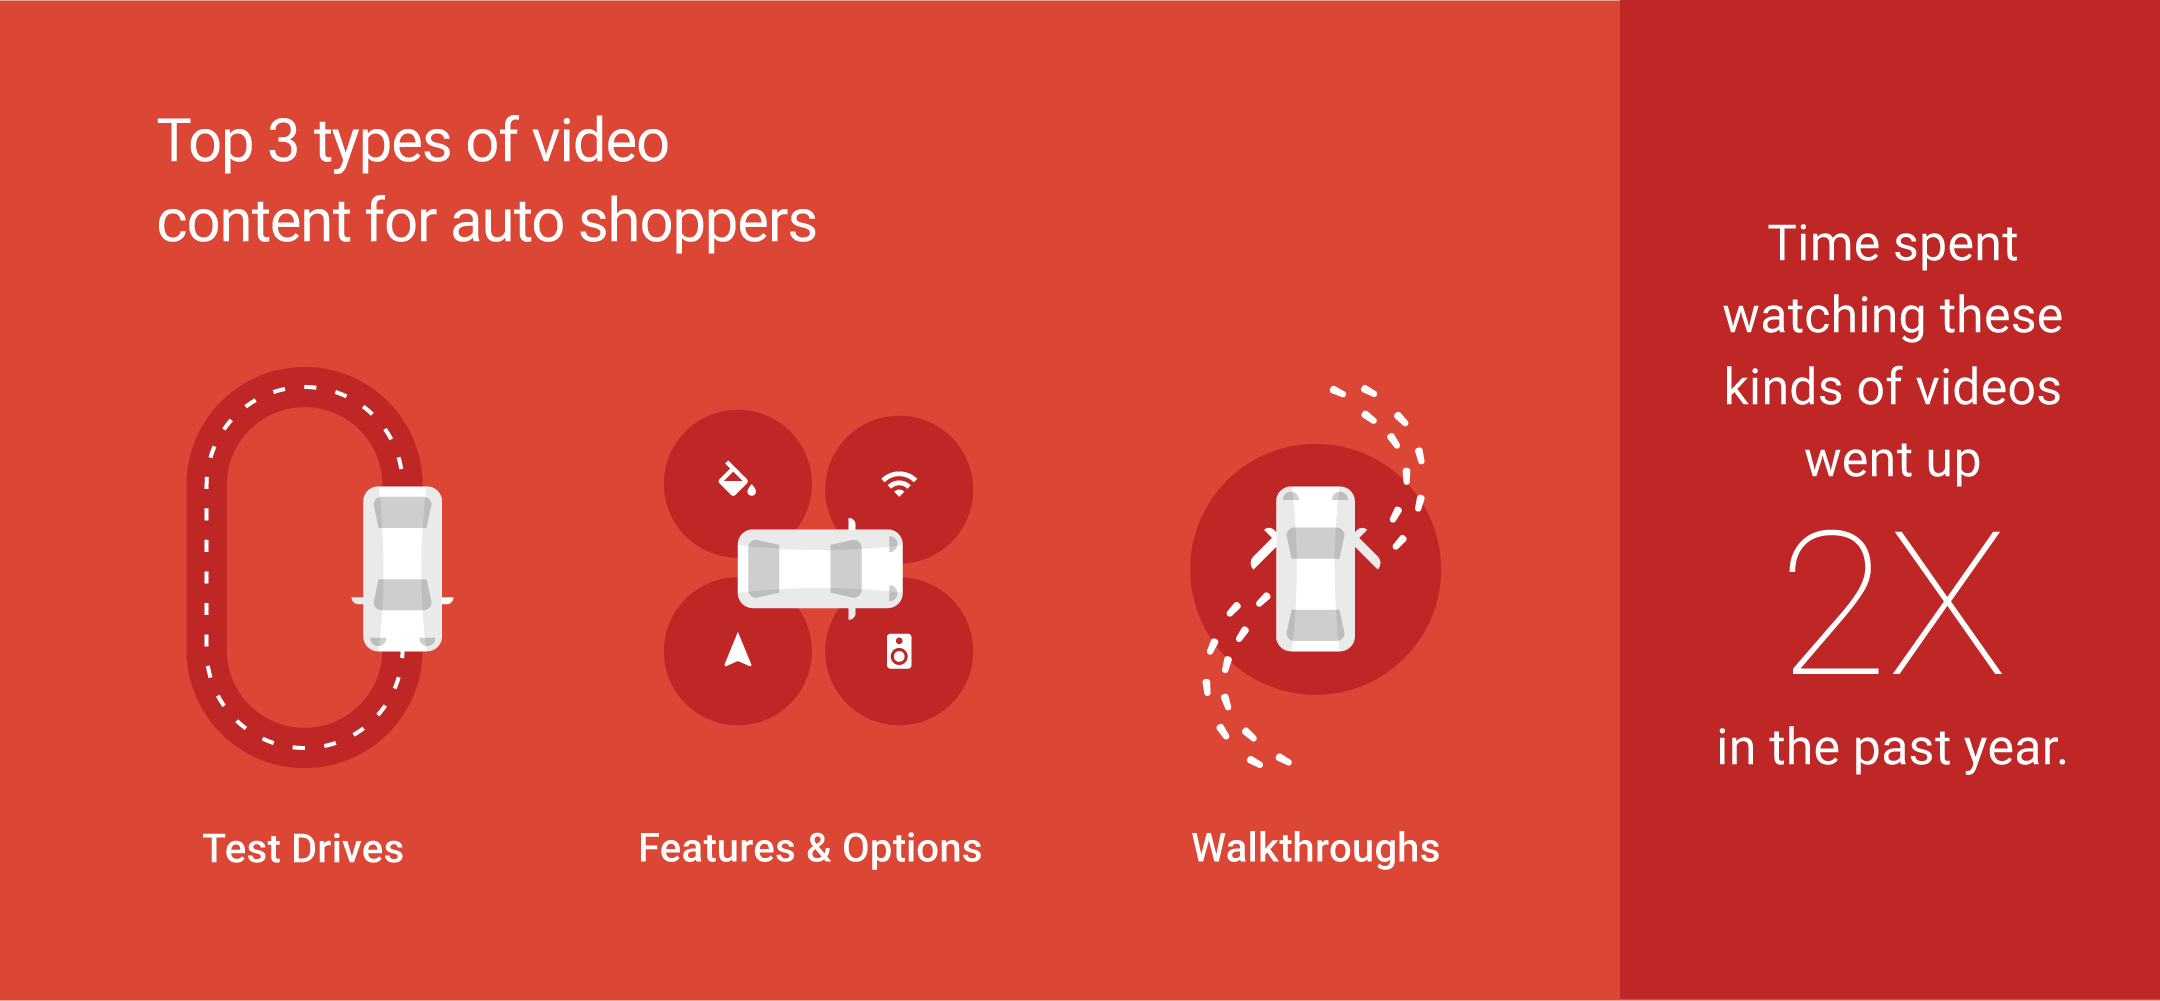 Automotive marketing trends: the types of video content auto shoppers consume